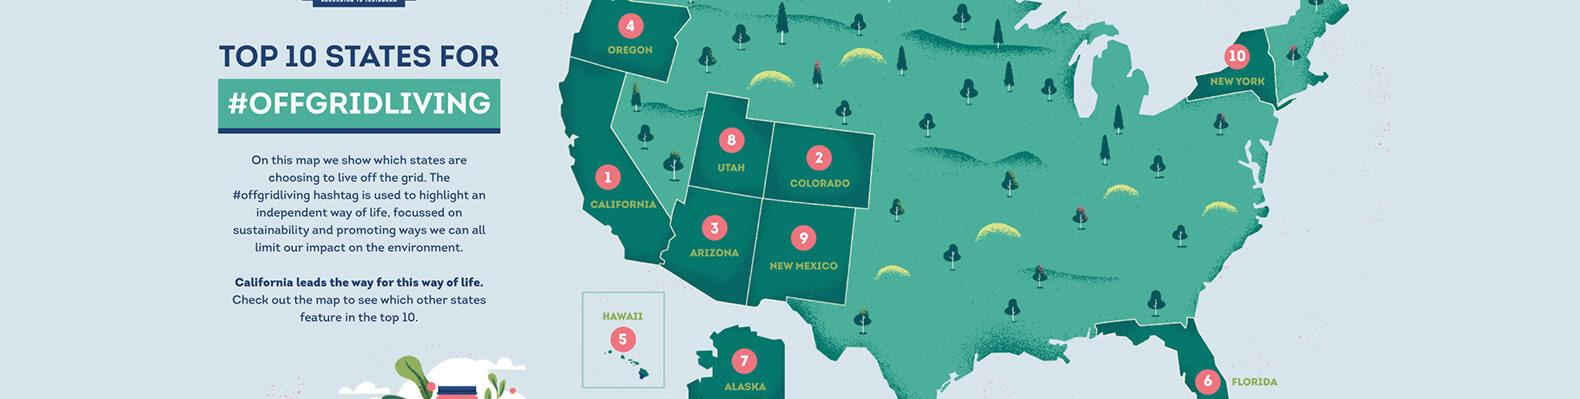 a map of the top 10 states for off-grid living